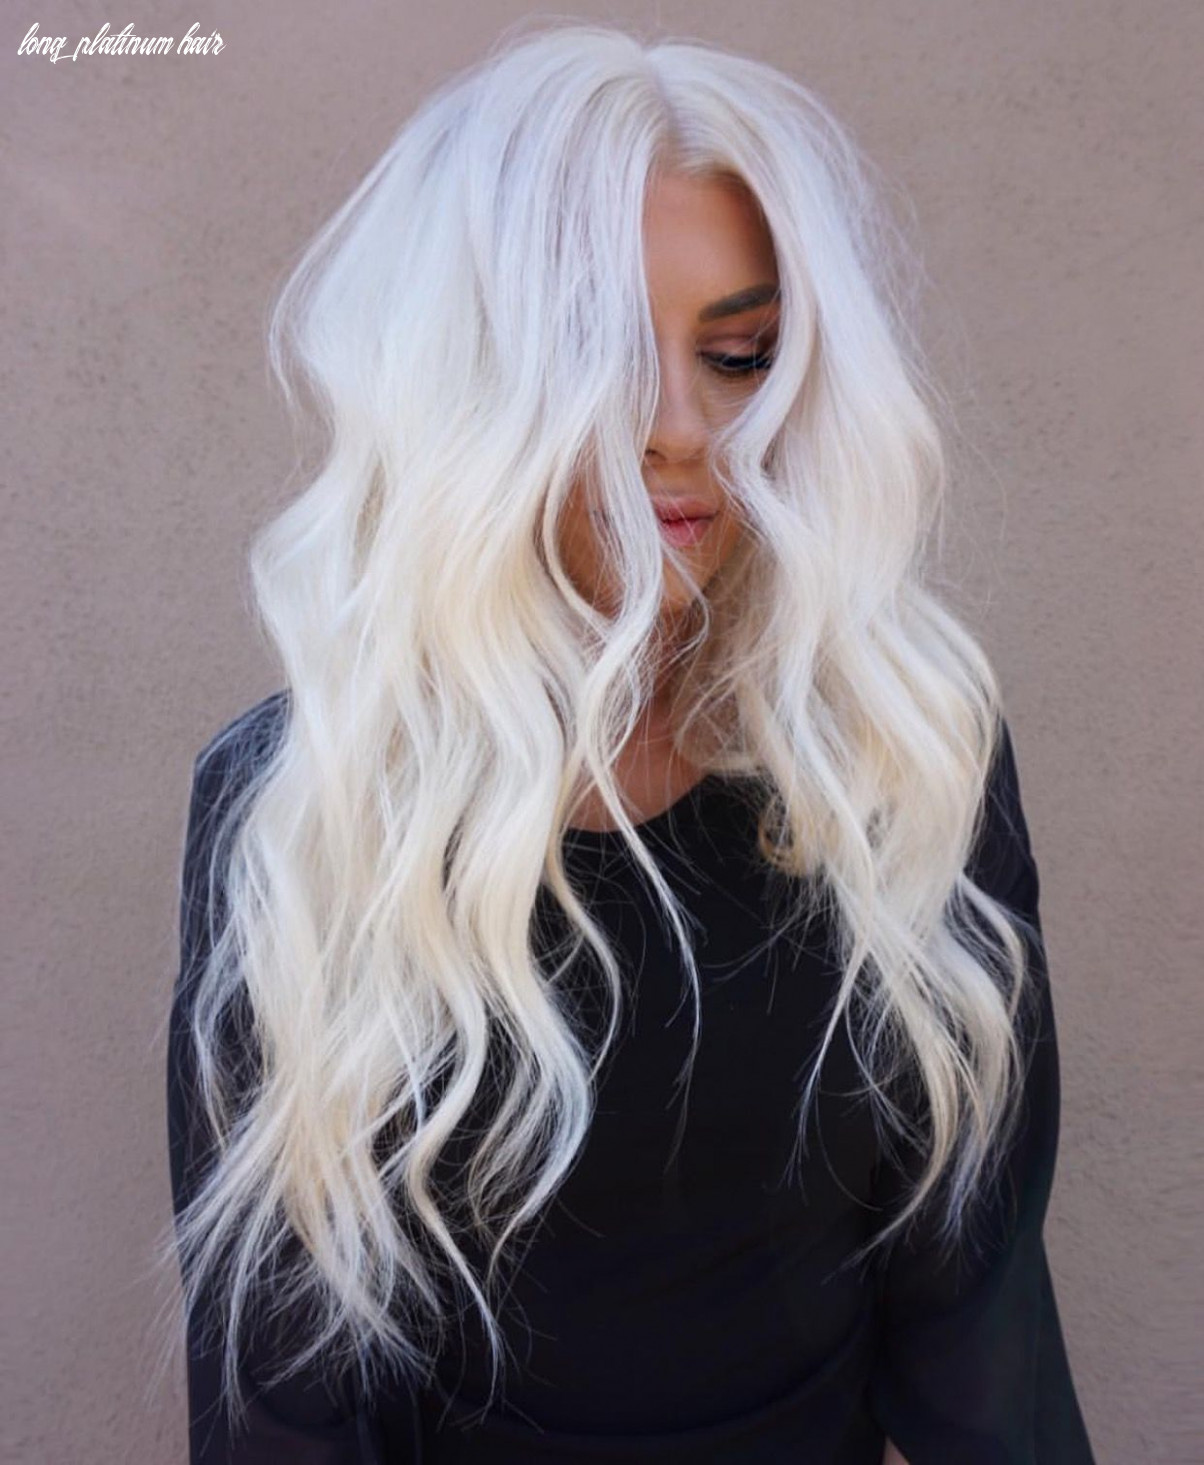 Stunning level 11 icy platinum hair looks gorgeous on long